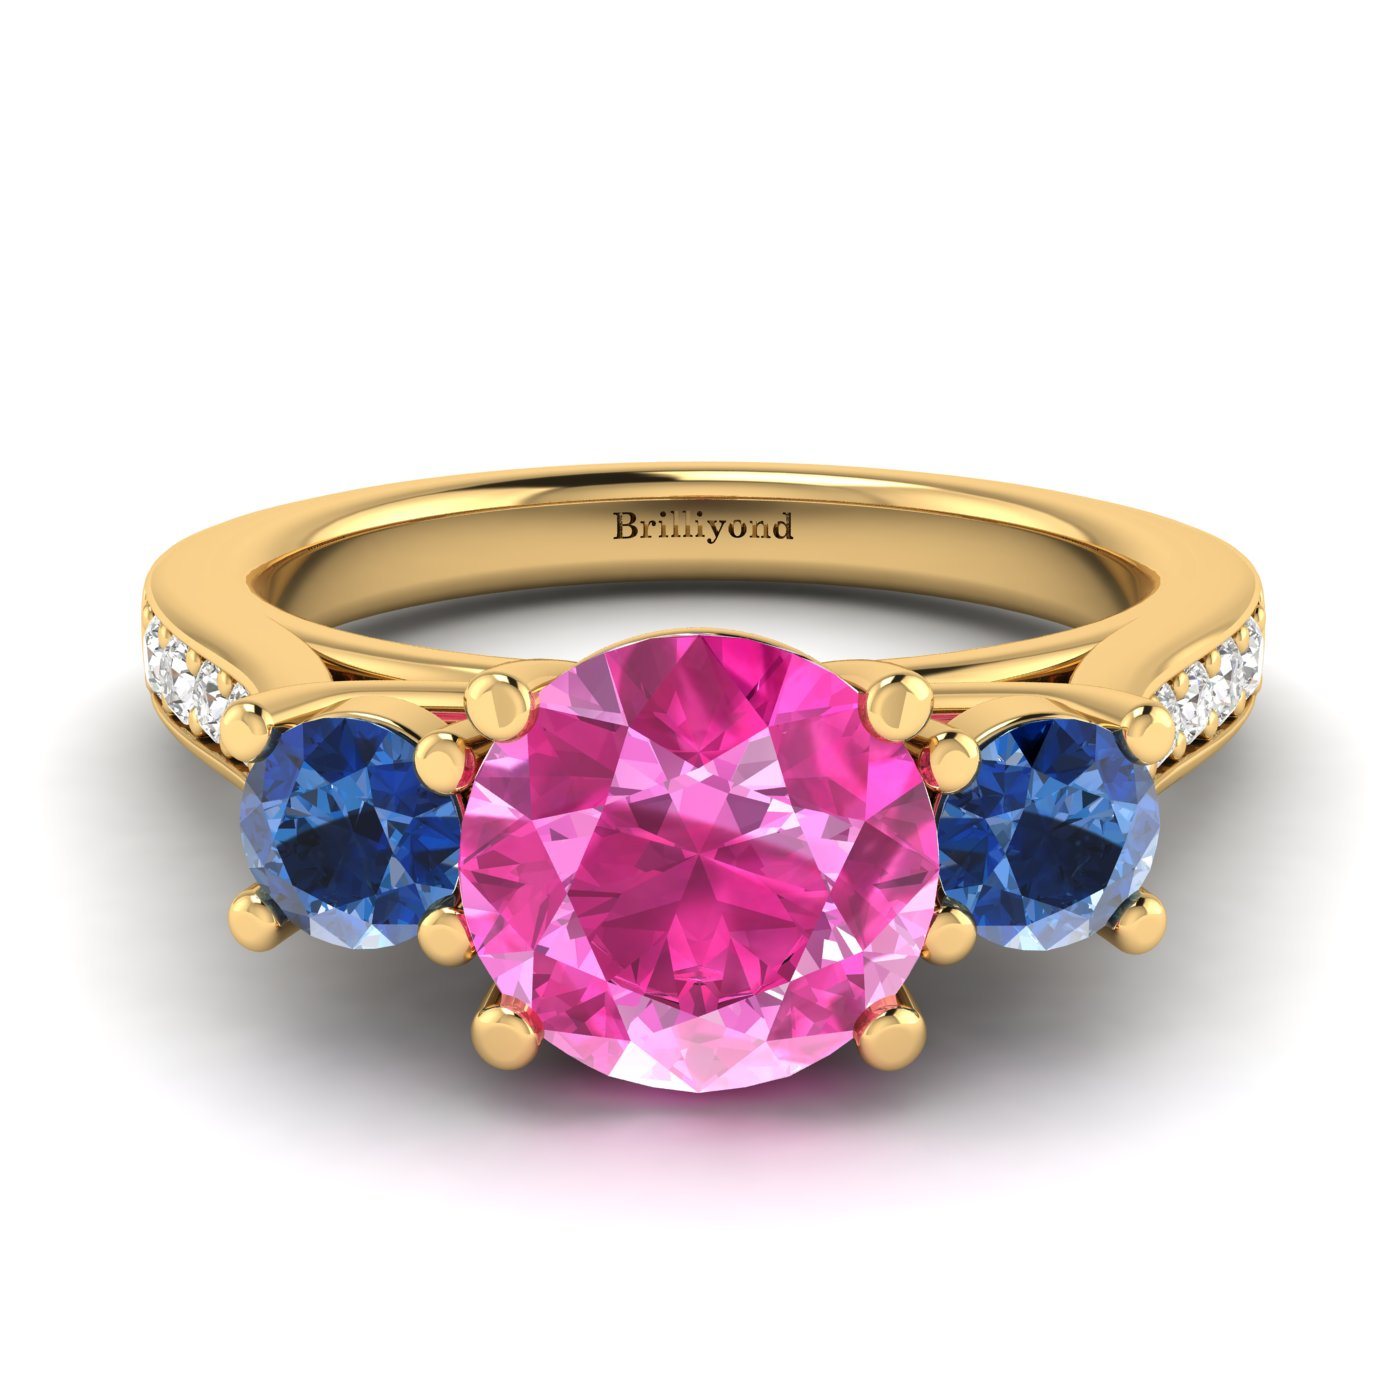 Blue and Pink Sapphires Set on Solid 18k Yellow Gold Band